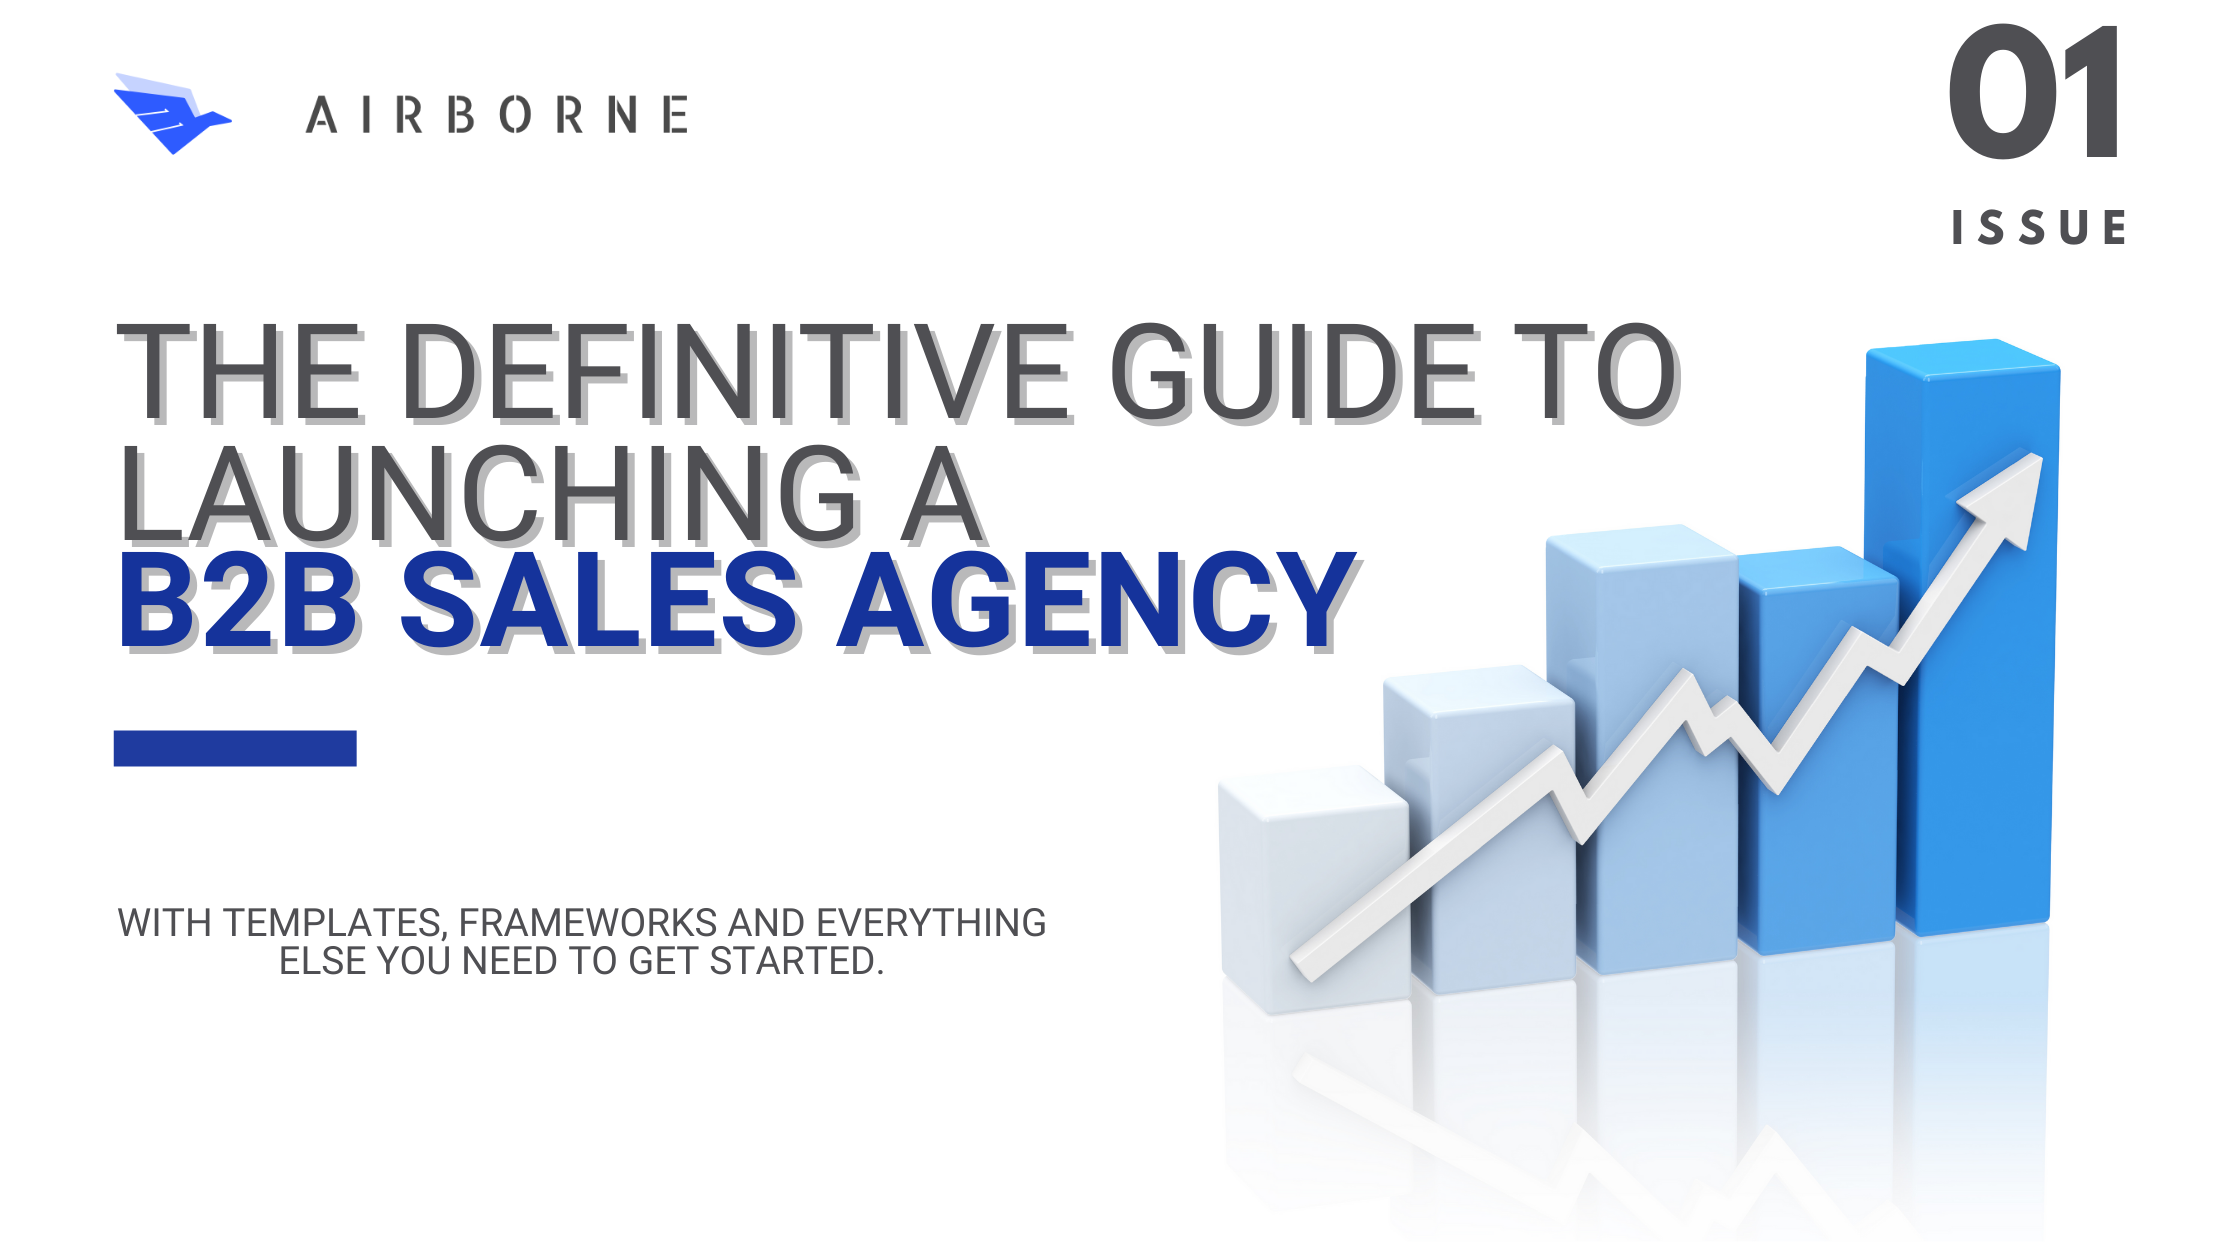 Guide to Launching a B2B Sales & Lead Generation Agency